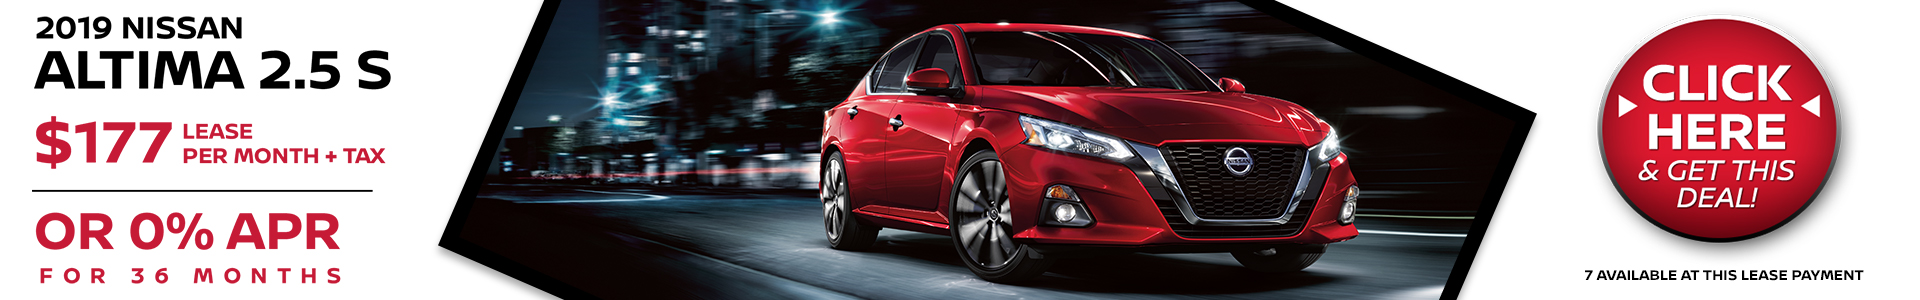 Mossy Nissan - Nissan Altima $177 Lease